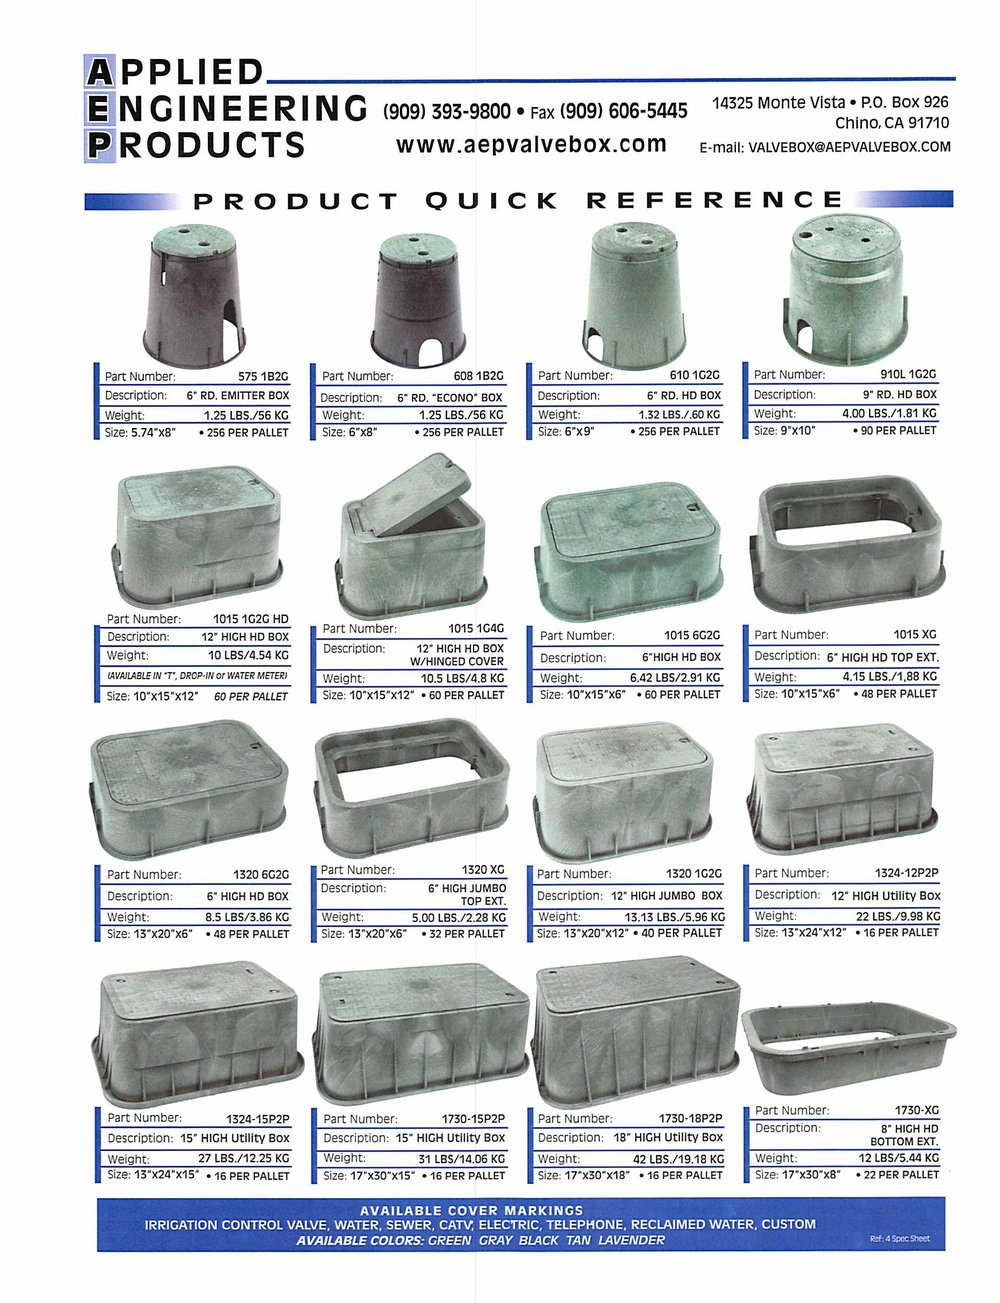 Product Quick Reference.jpg